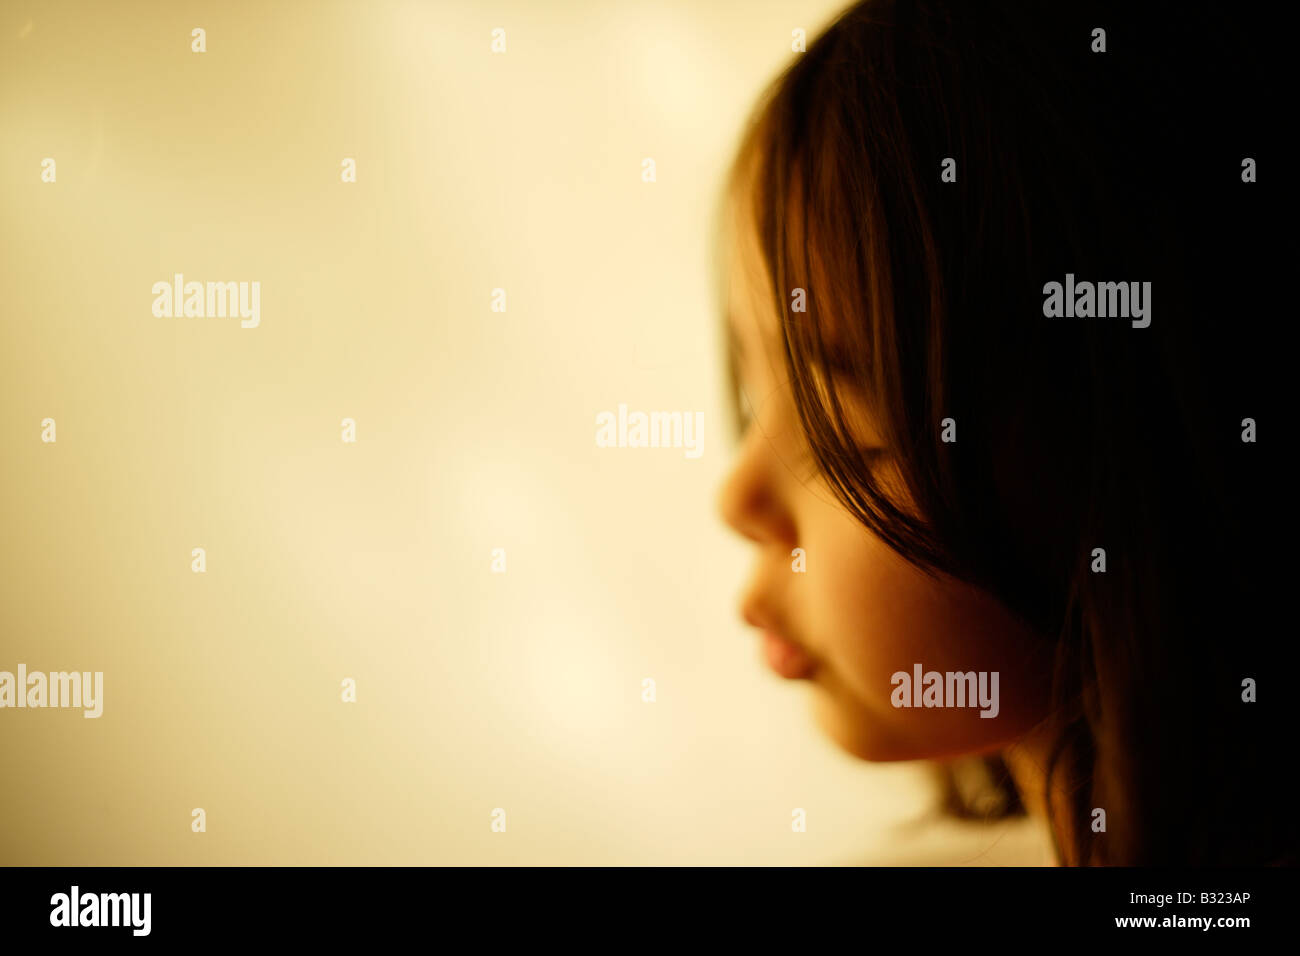 Profile of five year old girl - Stock Image